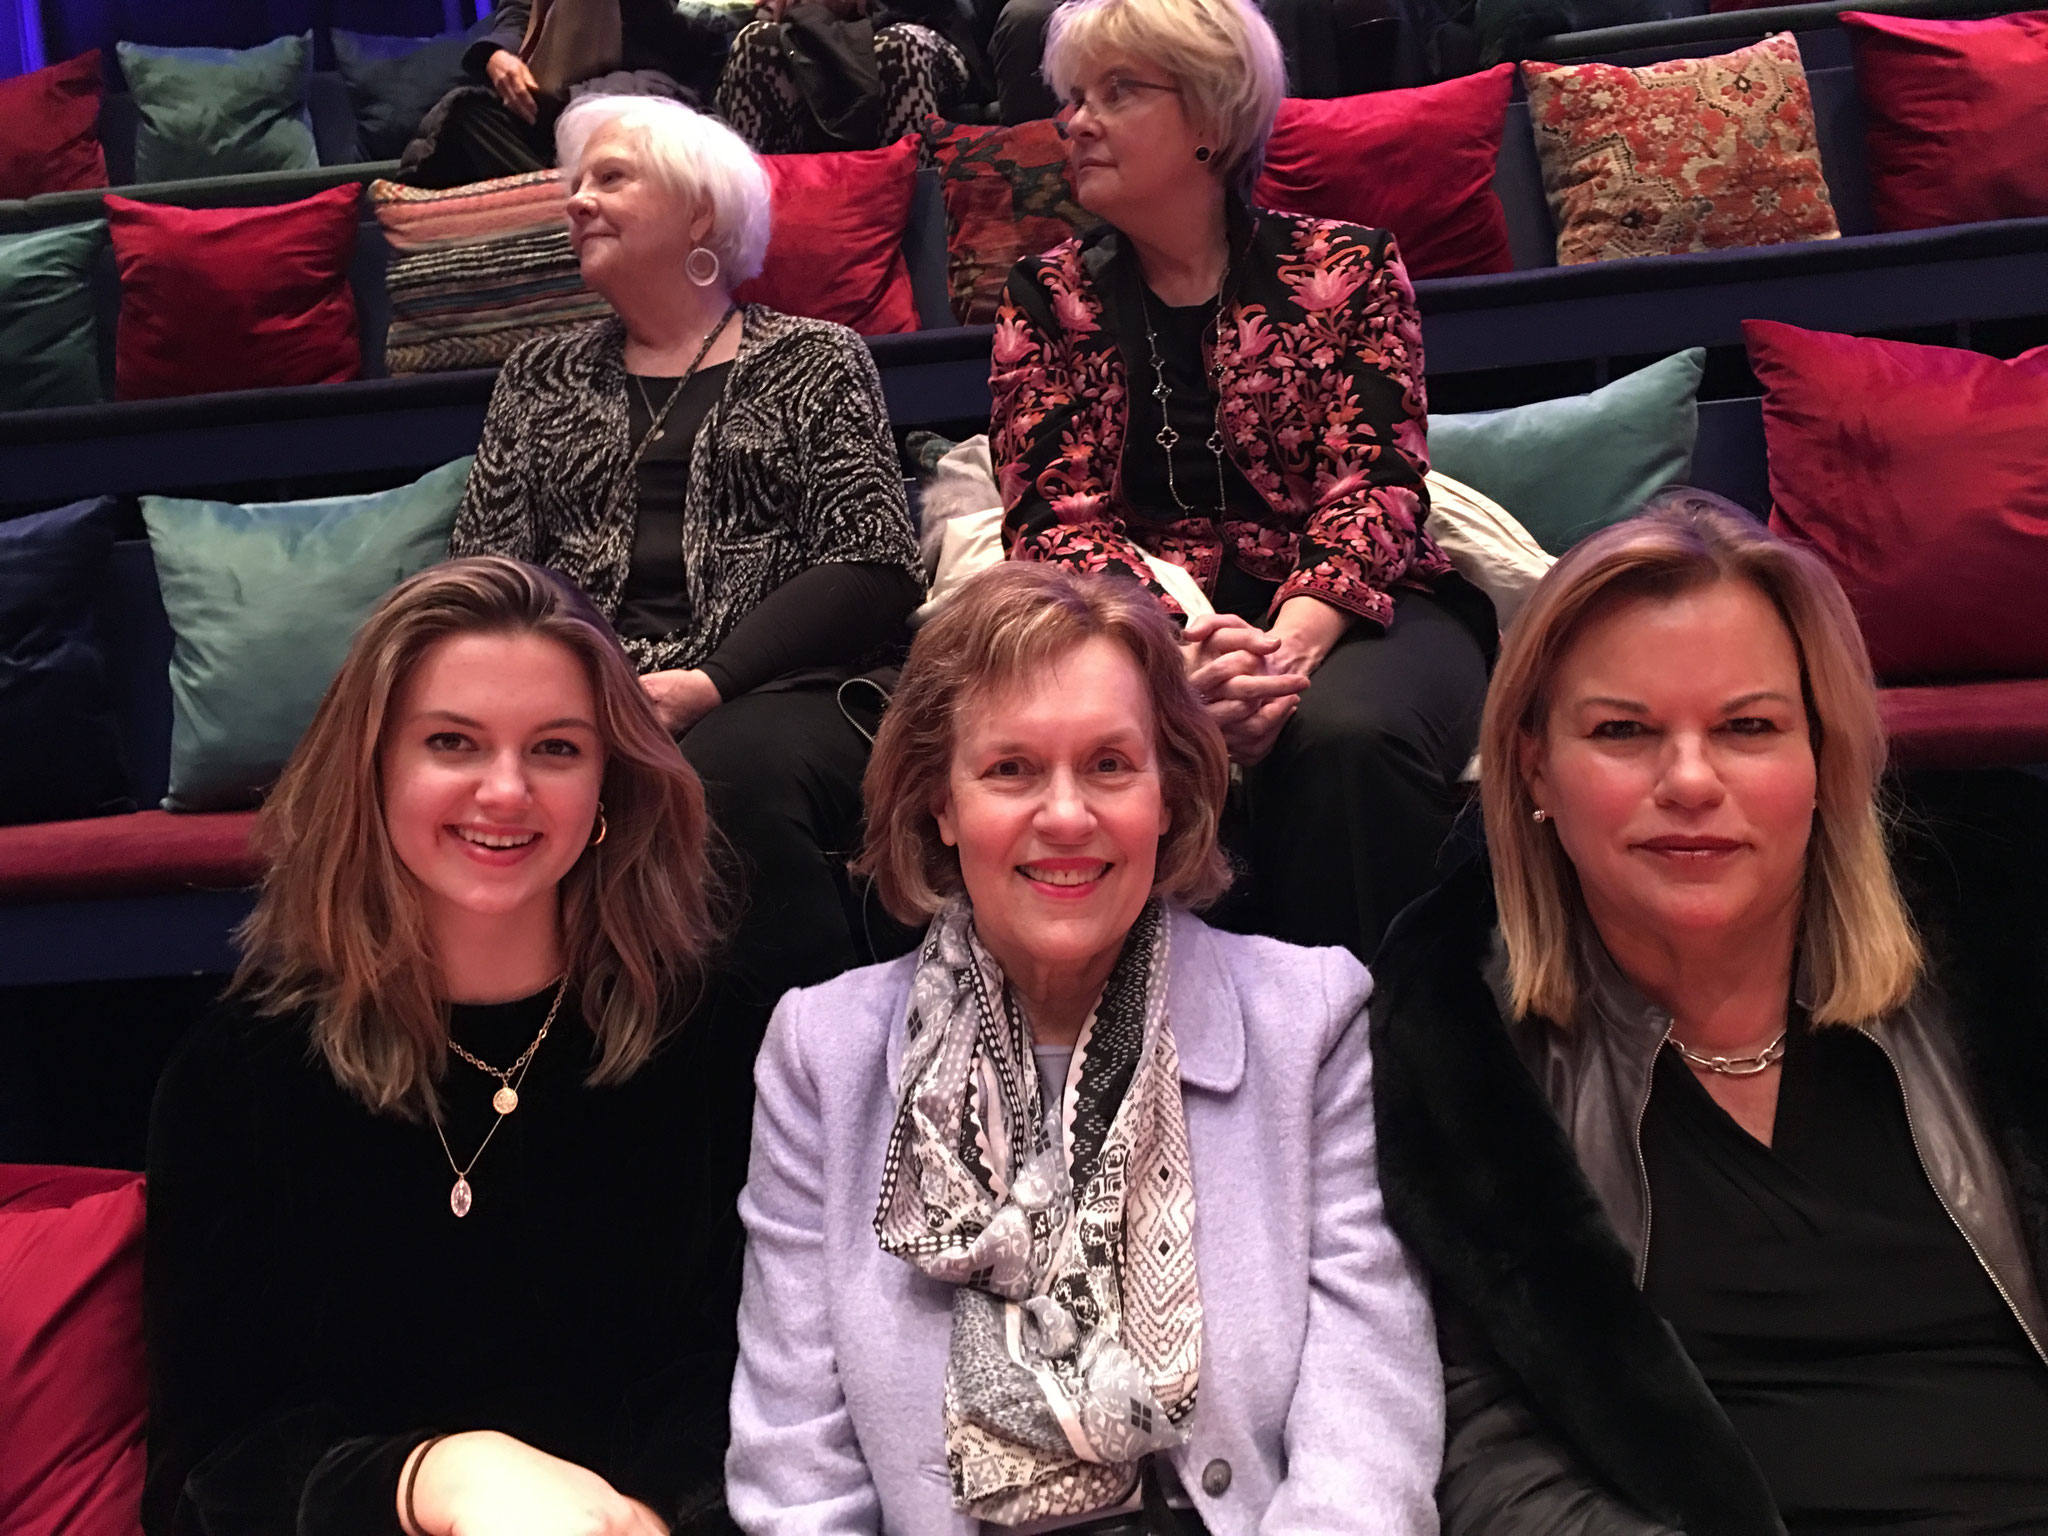 Kate, Lorraine, & Celeste at a play about Gloria Steinem in NYC